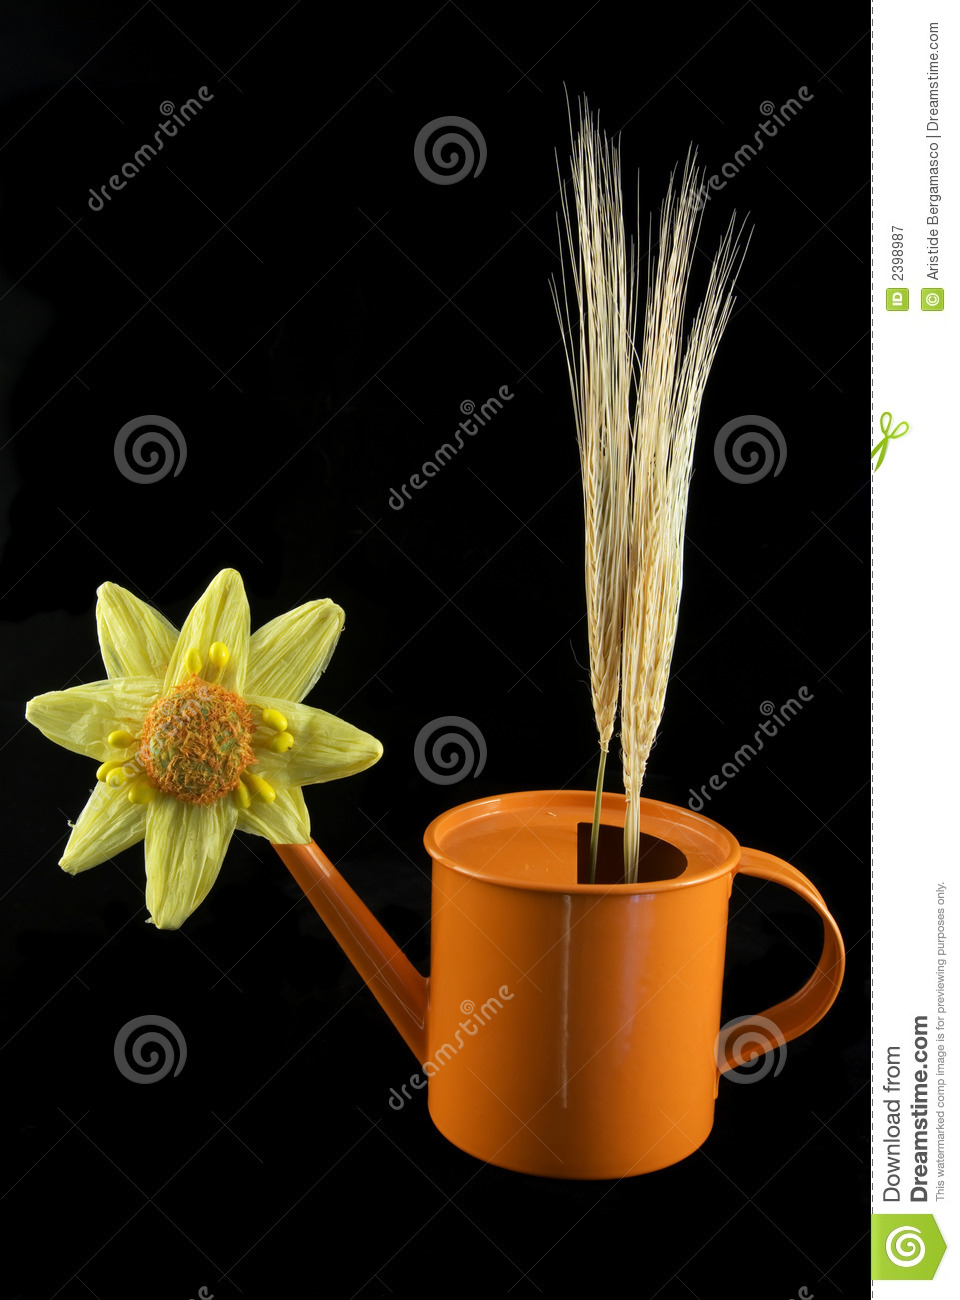 Flower can with wheat spikes